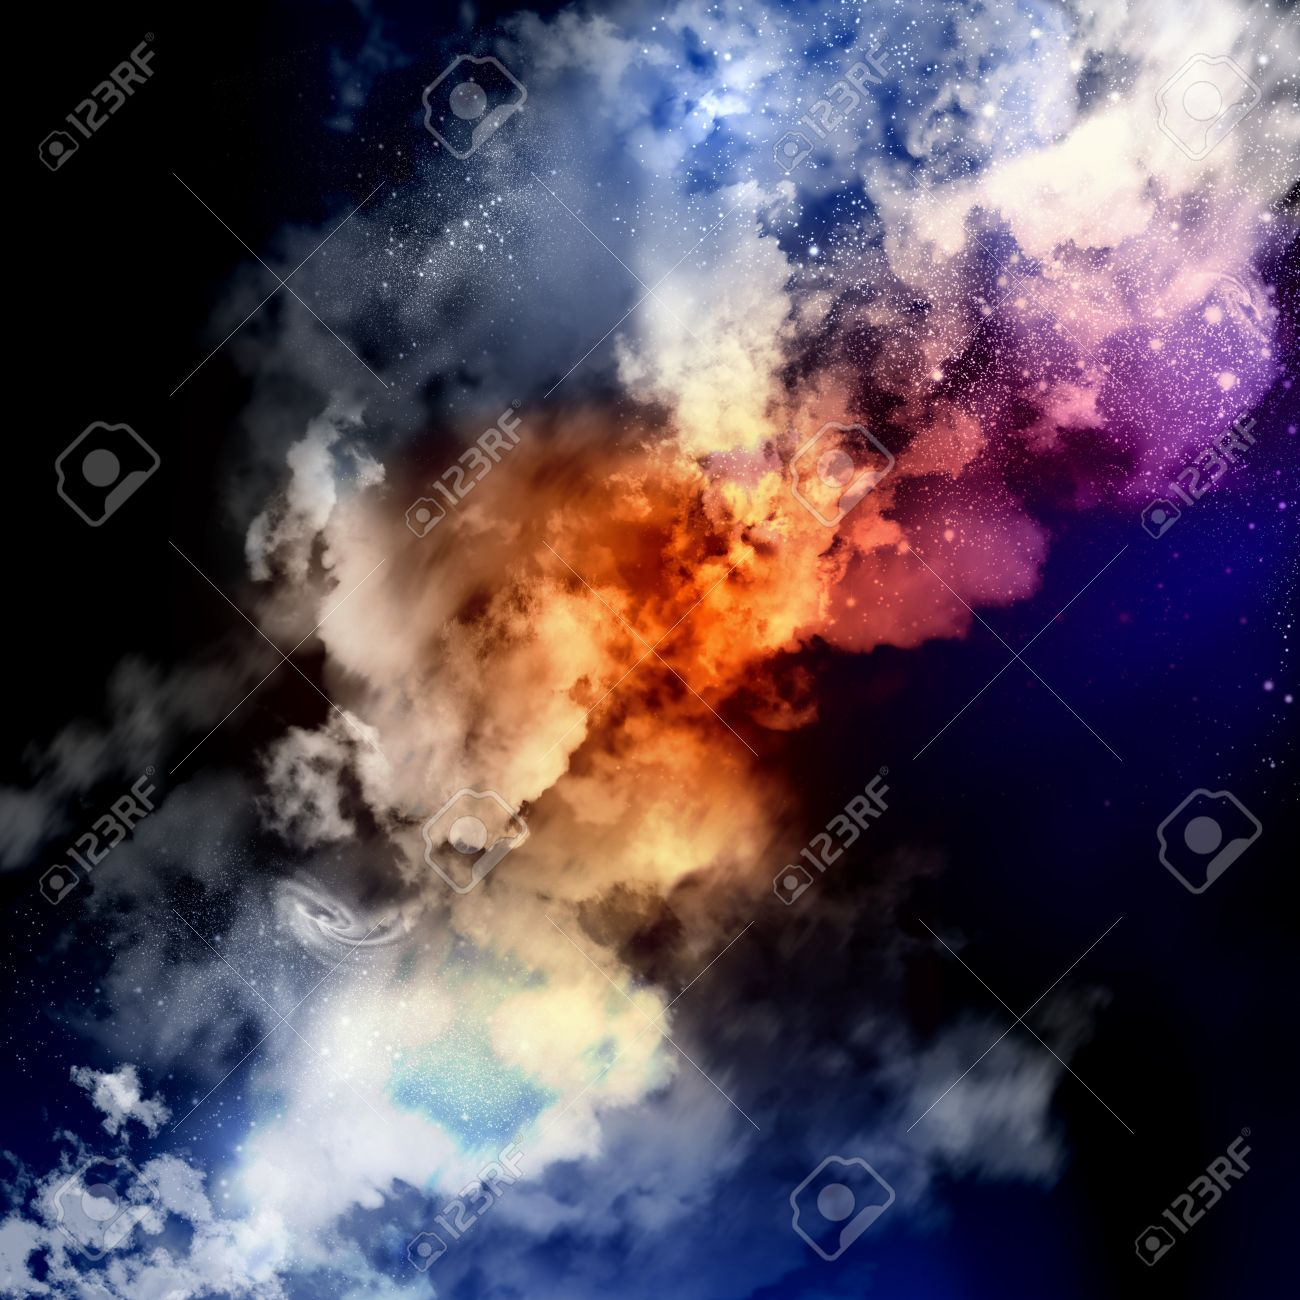 Cosmic clouds of mist on bright colorful backgrounds Stock Photo - 18011310